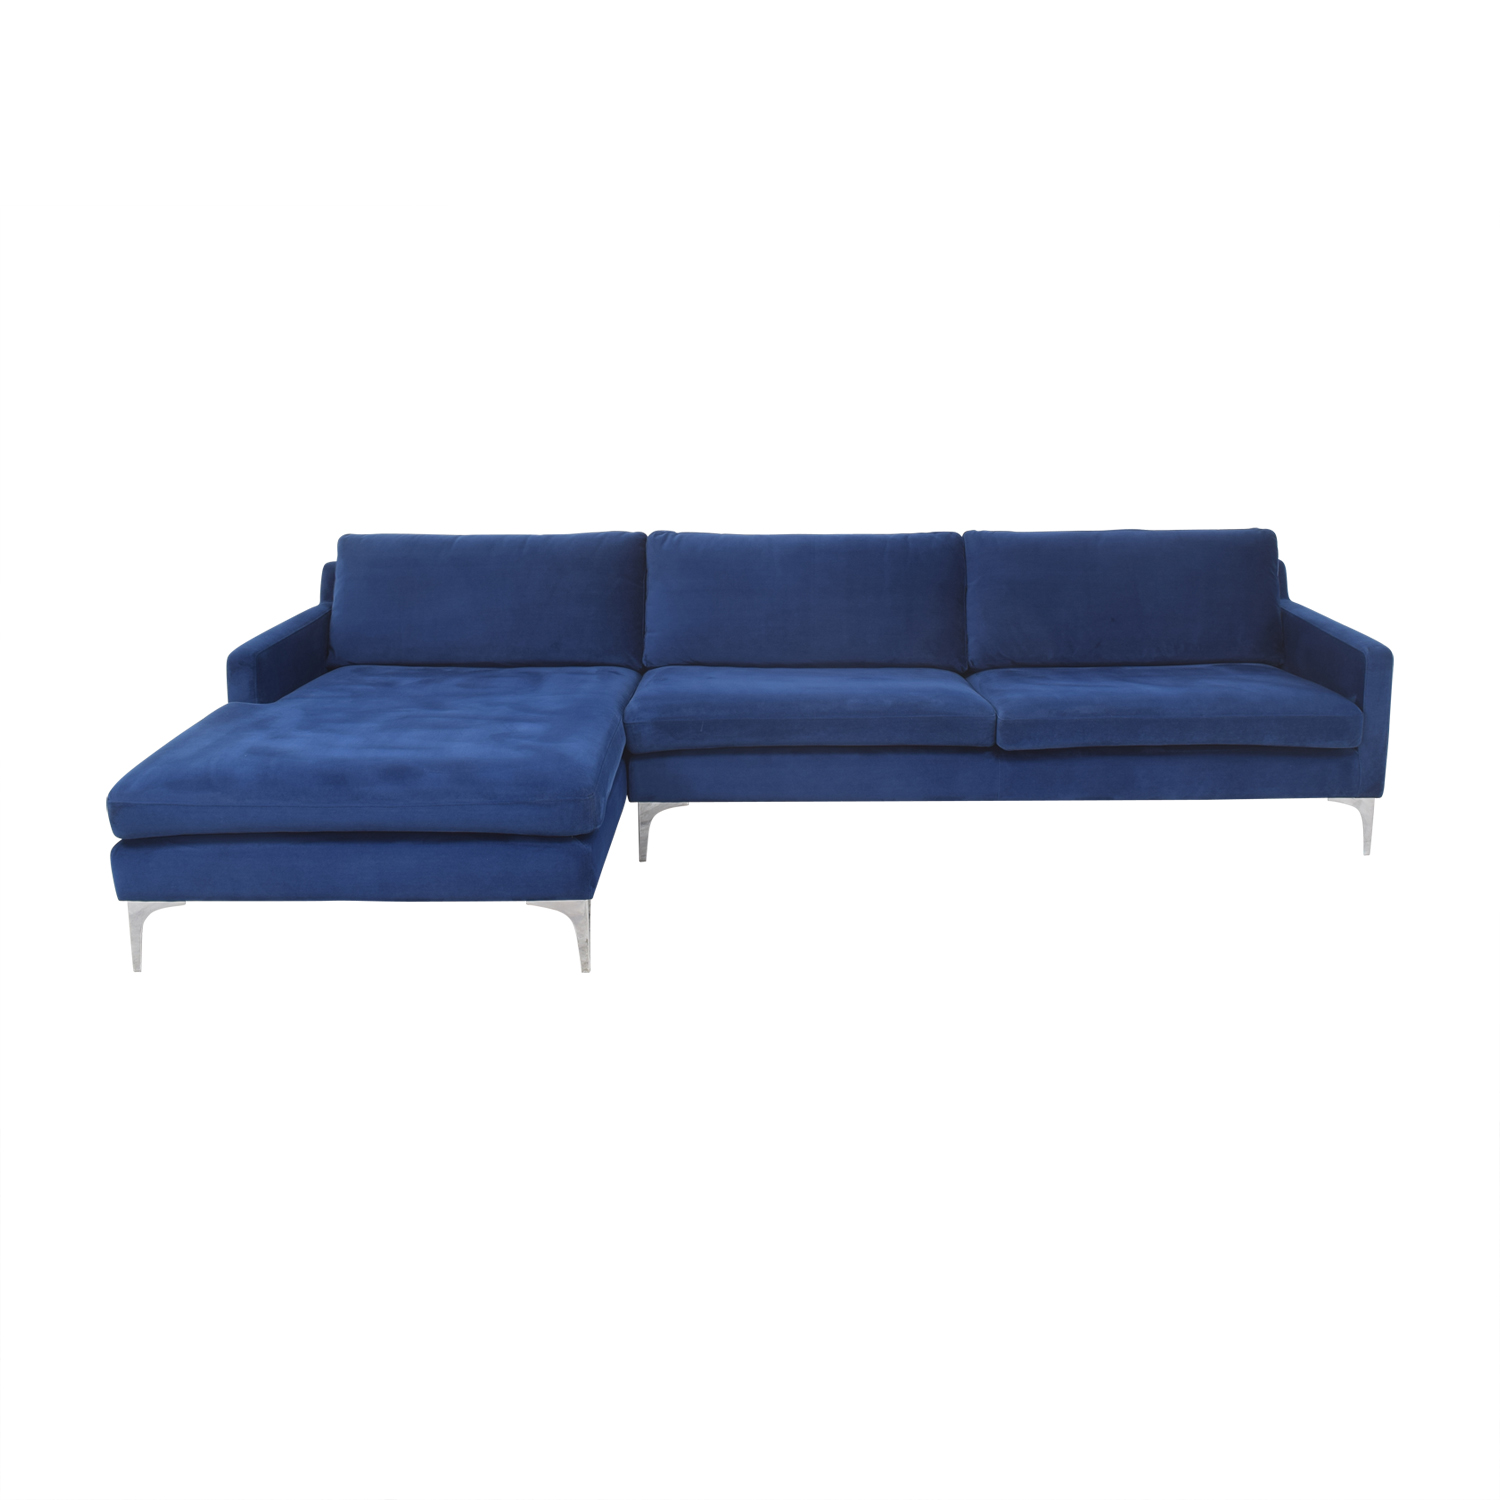 Joss & Main Bridgehampton Chaise Sectional Sofa / Sofas